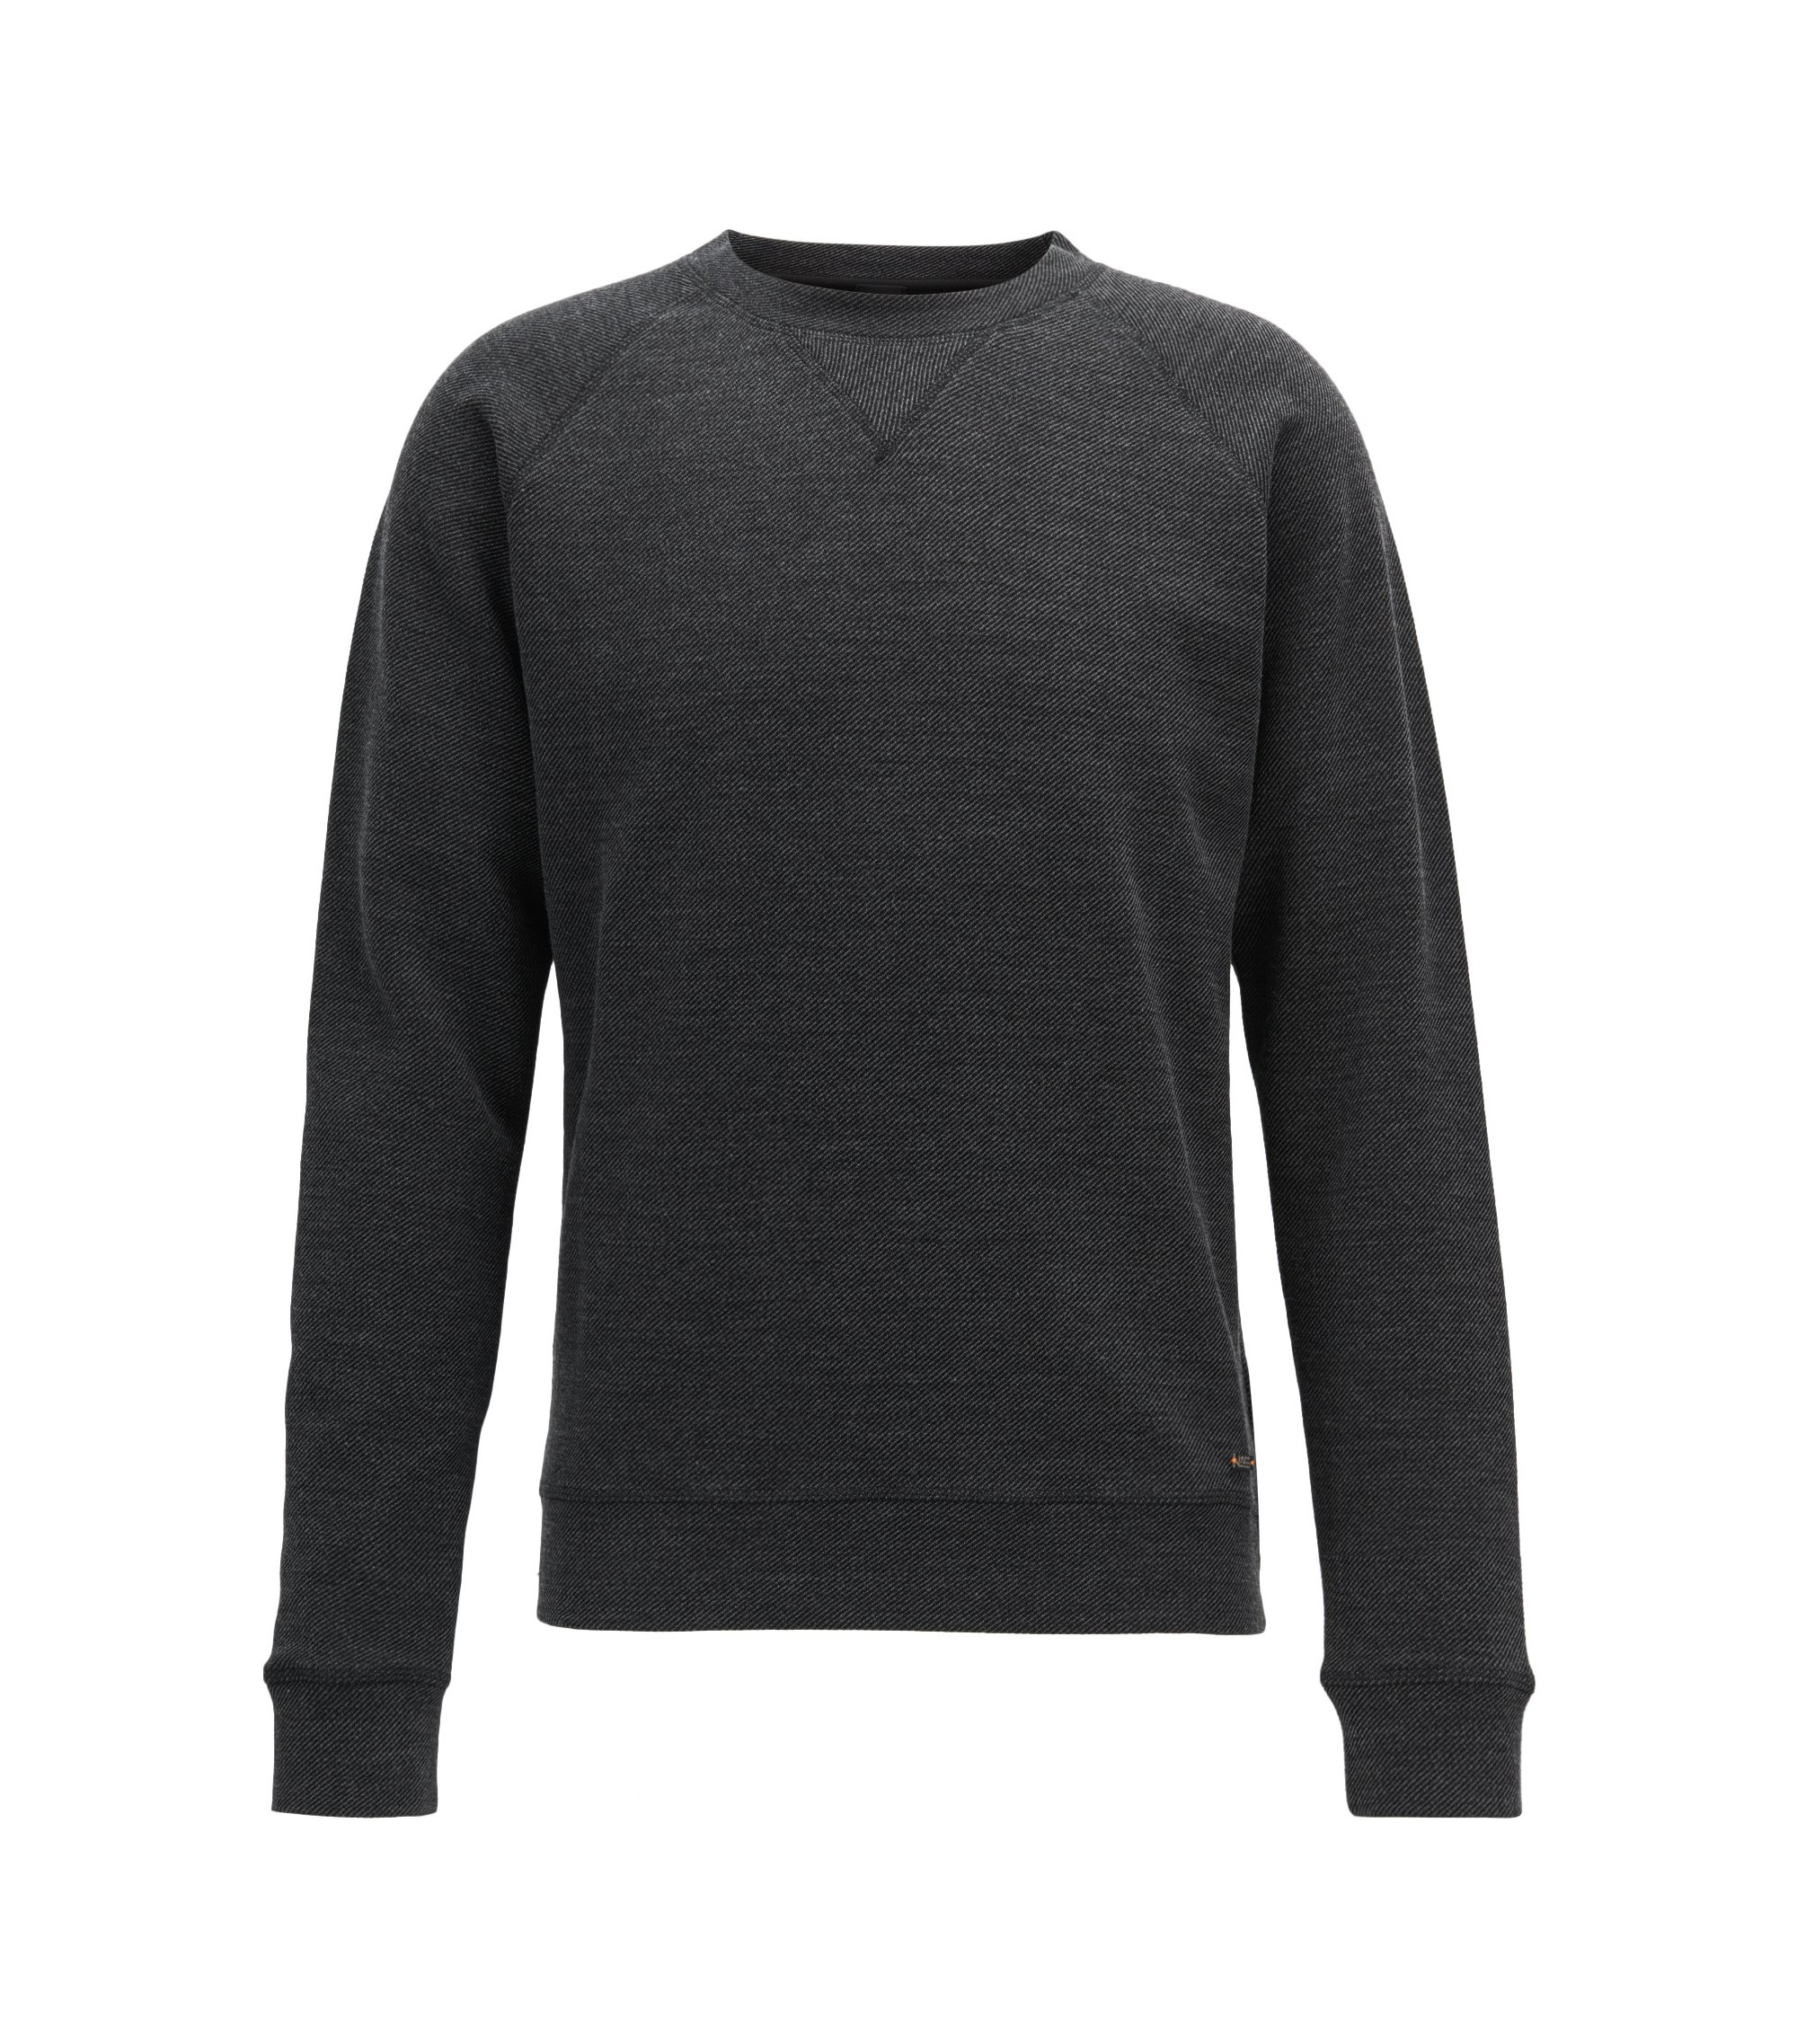 Crew-neck sweatshirt in a structured cotton blend, Black